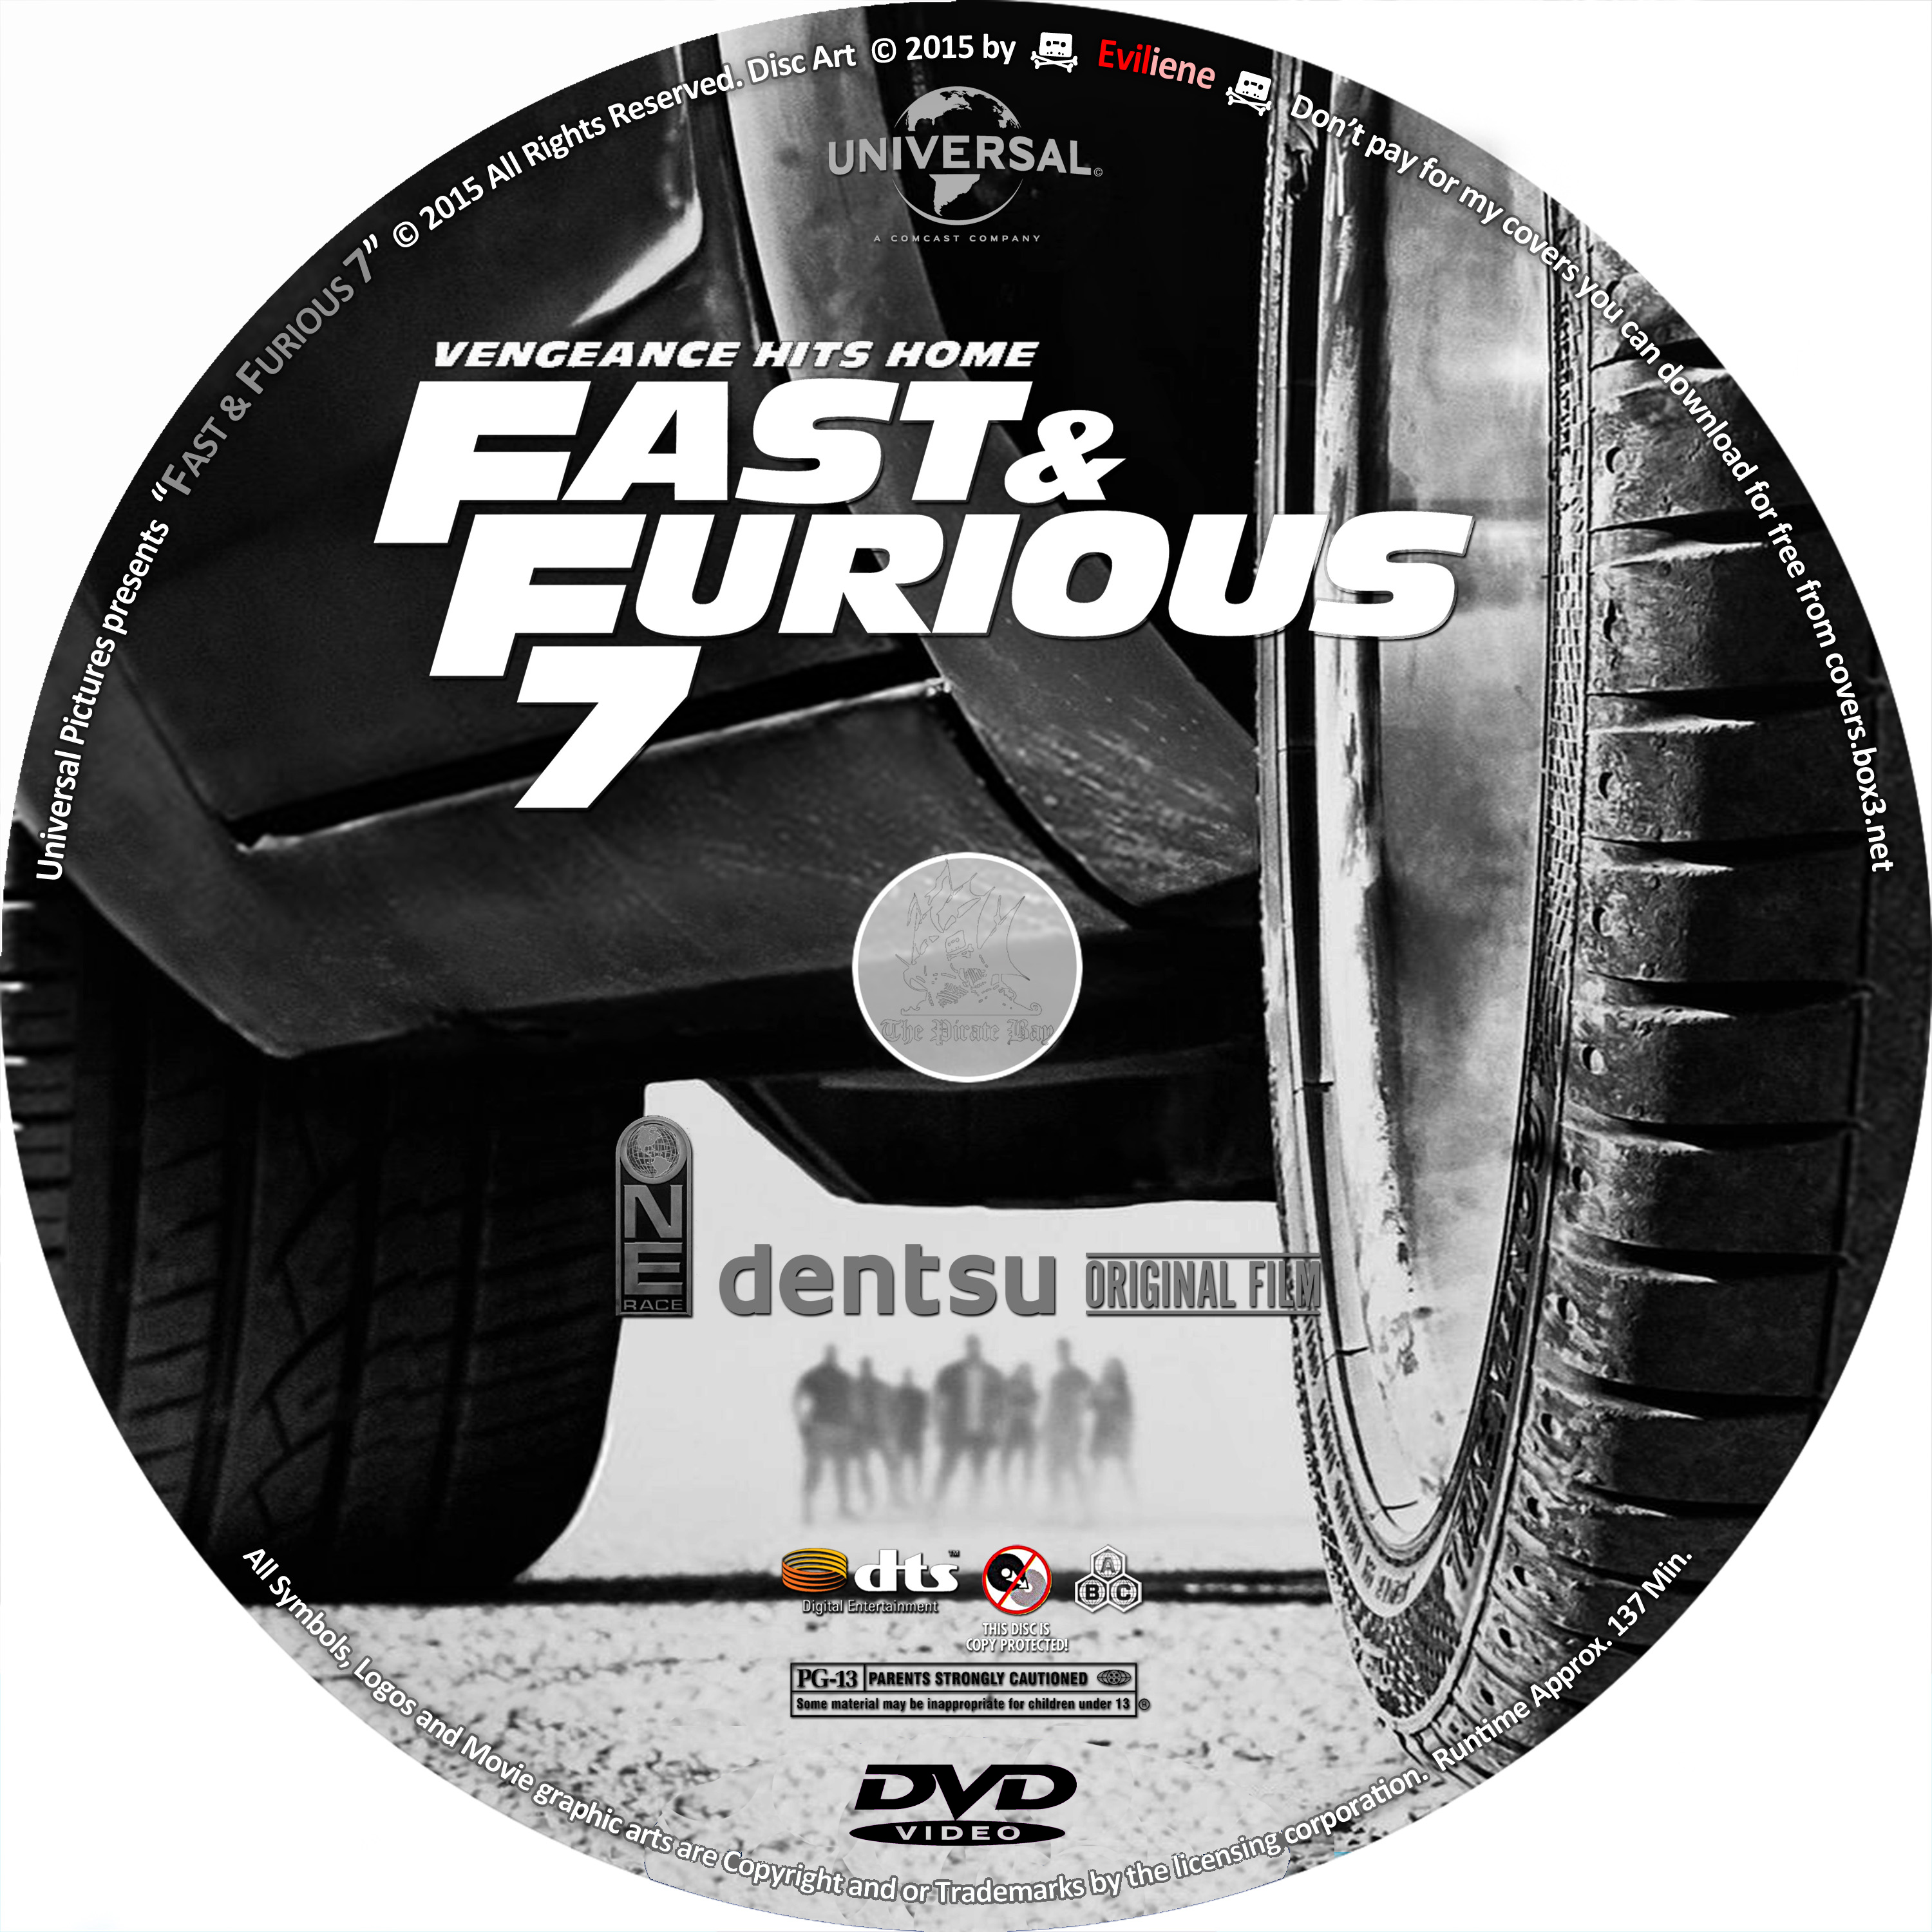 fast and furious 7 soundtrack mp3 free download 320kbps